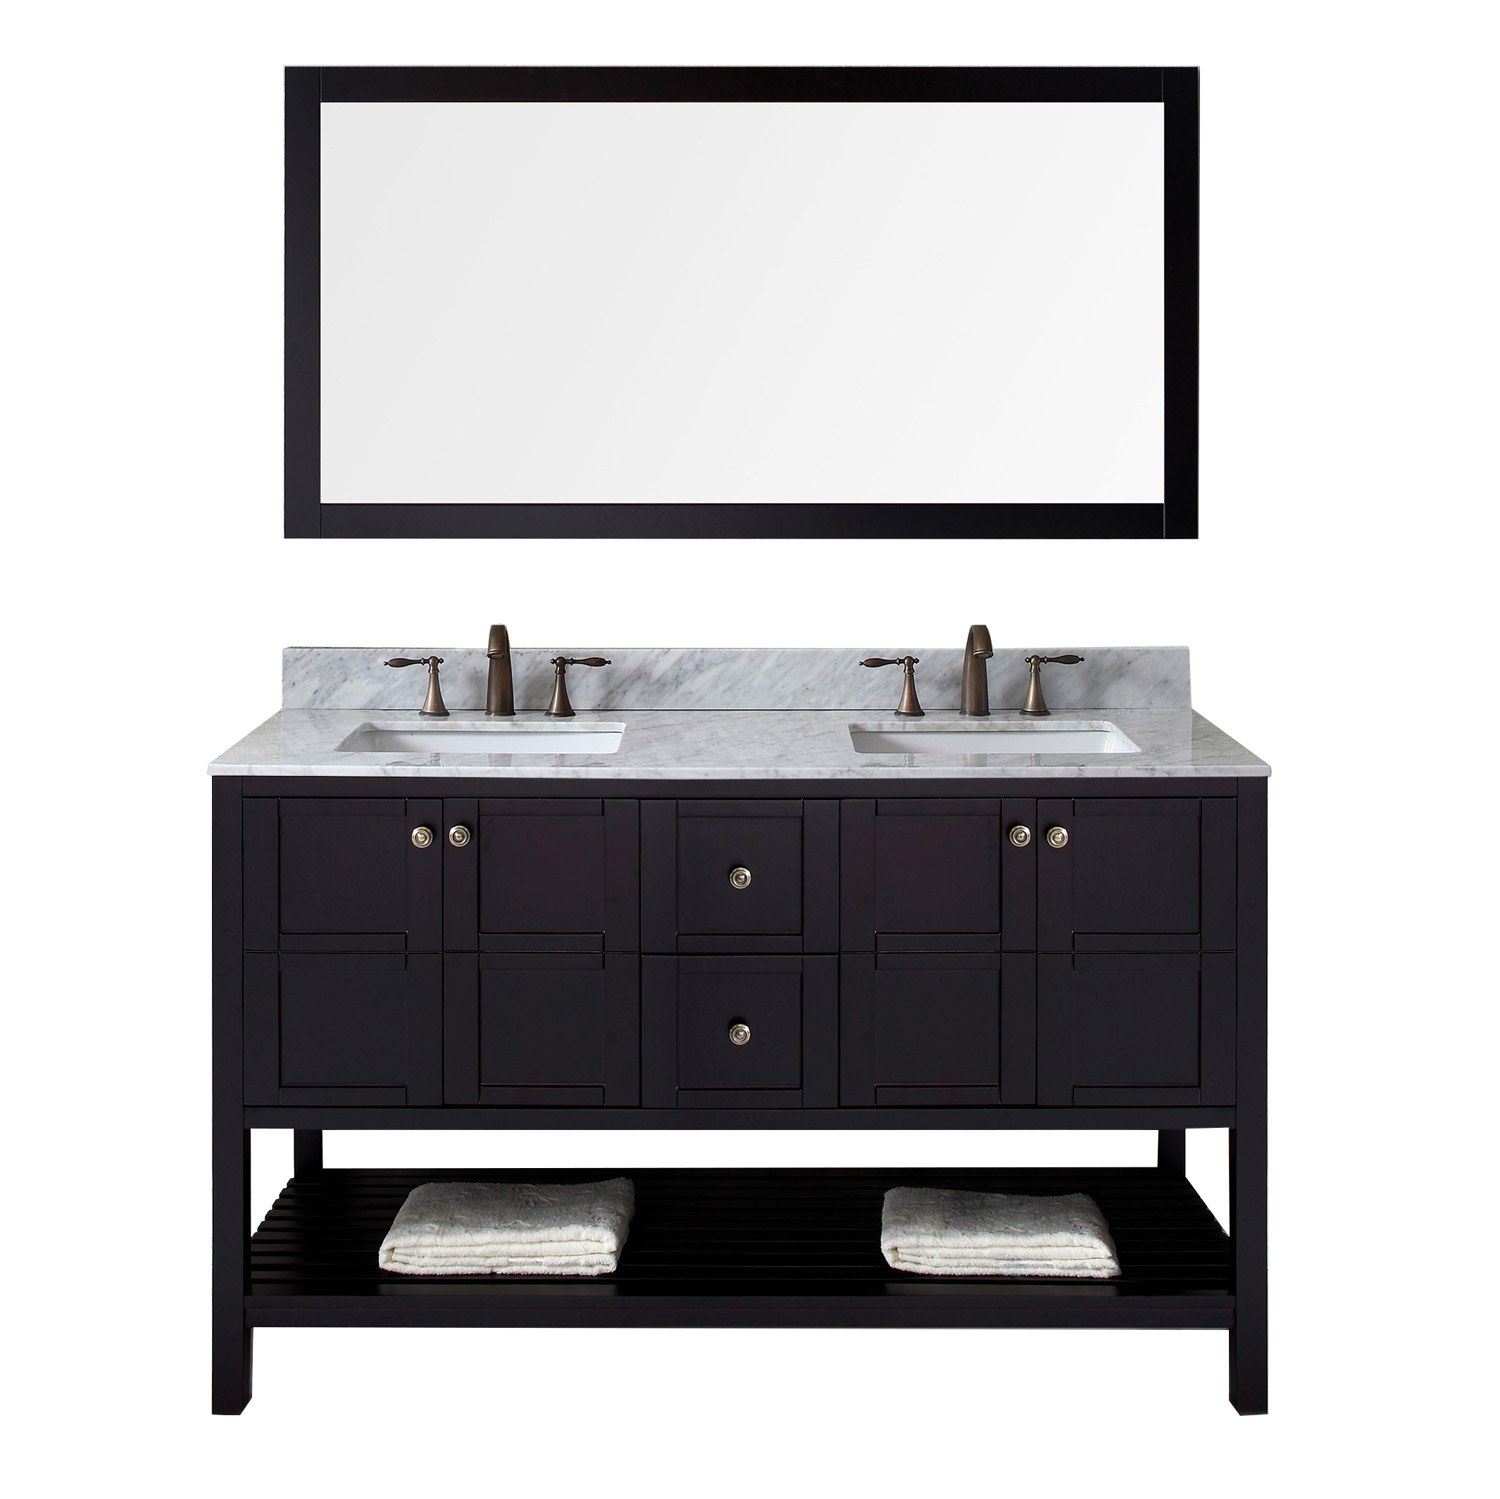 "60"" Double Bath Vanity in Espresso Finish with Marble Top and Square Sink with Faucet and Mirror Options"